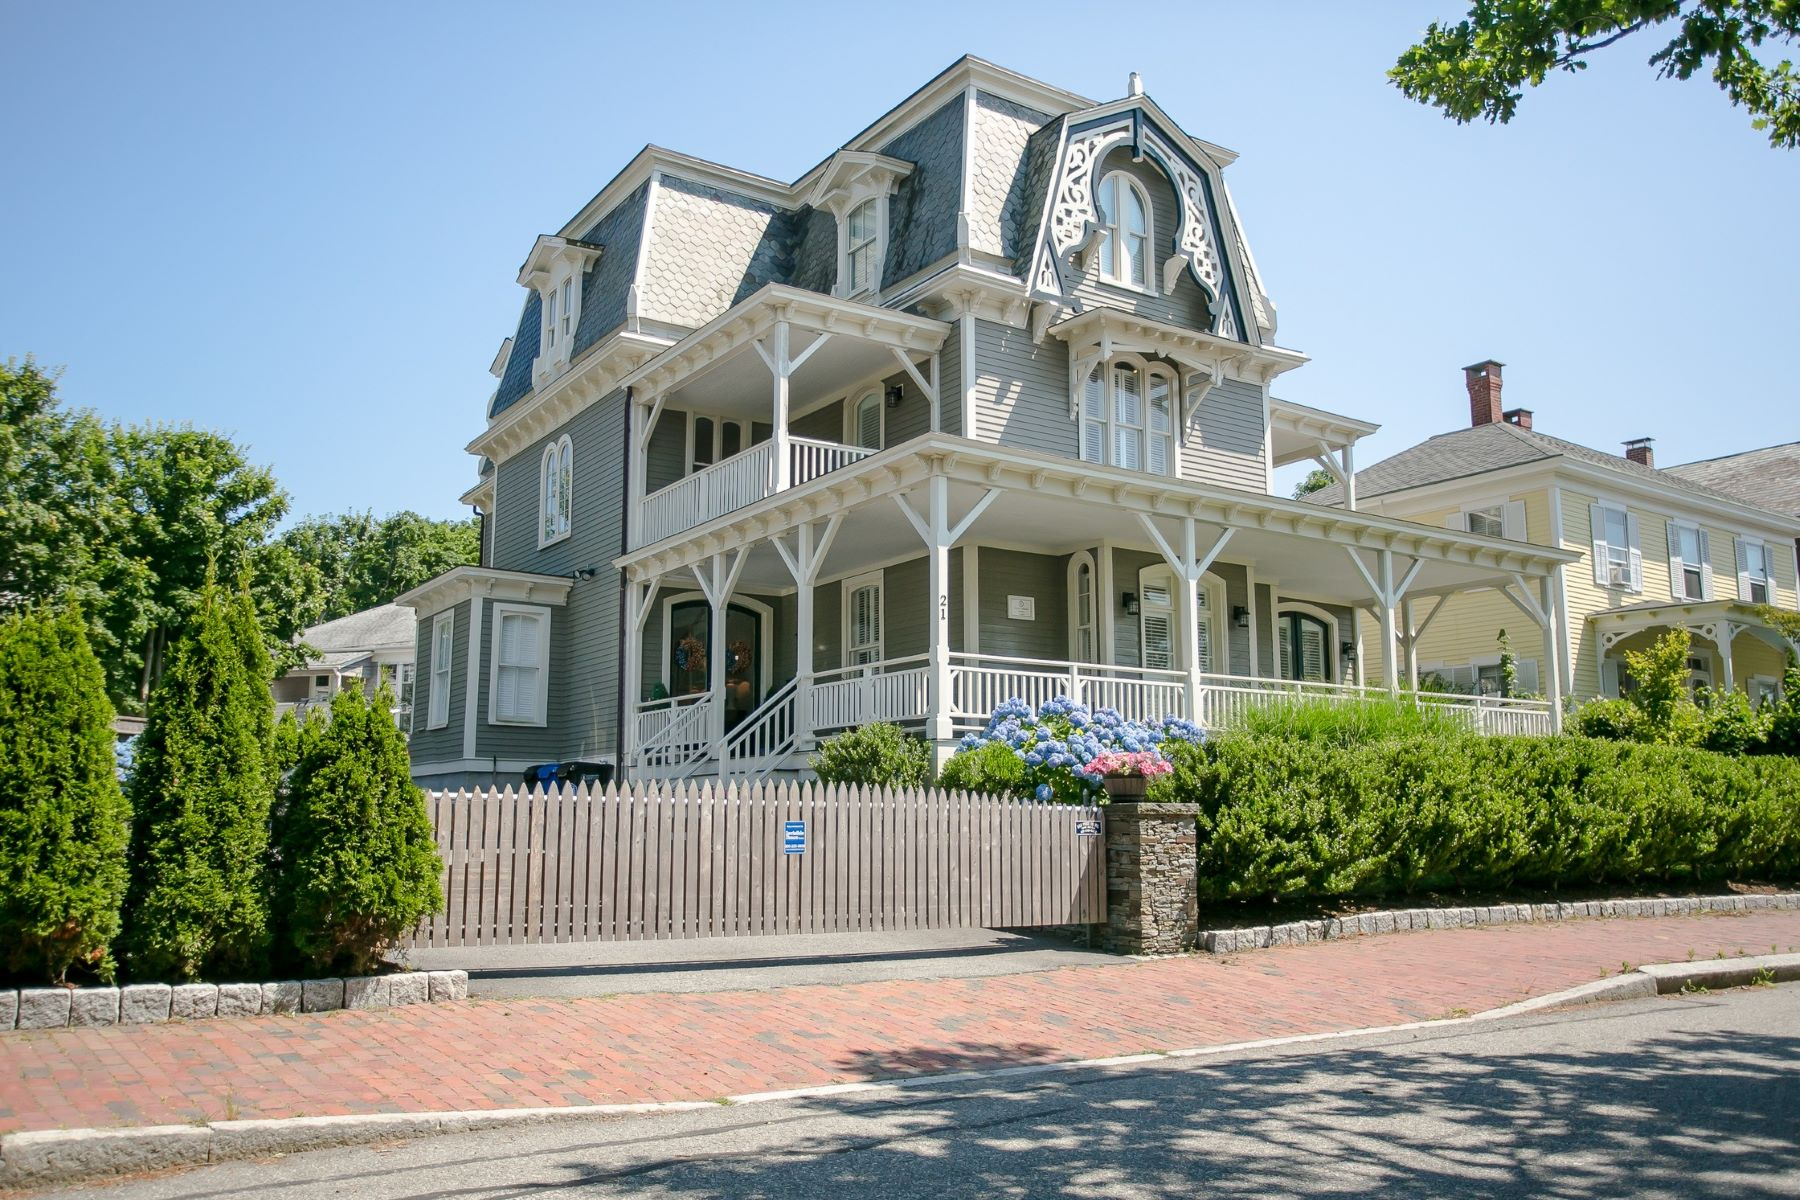 Single Family Homes for Sale at Renovated Historic Hill Victorian 21 Kay Street Newport, Rhode Island 02840 United States